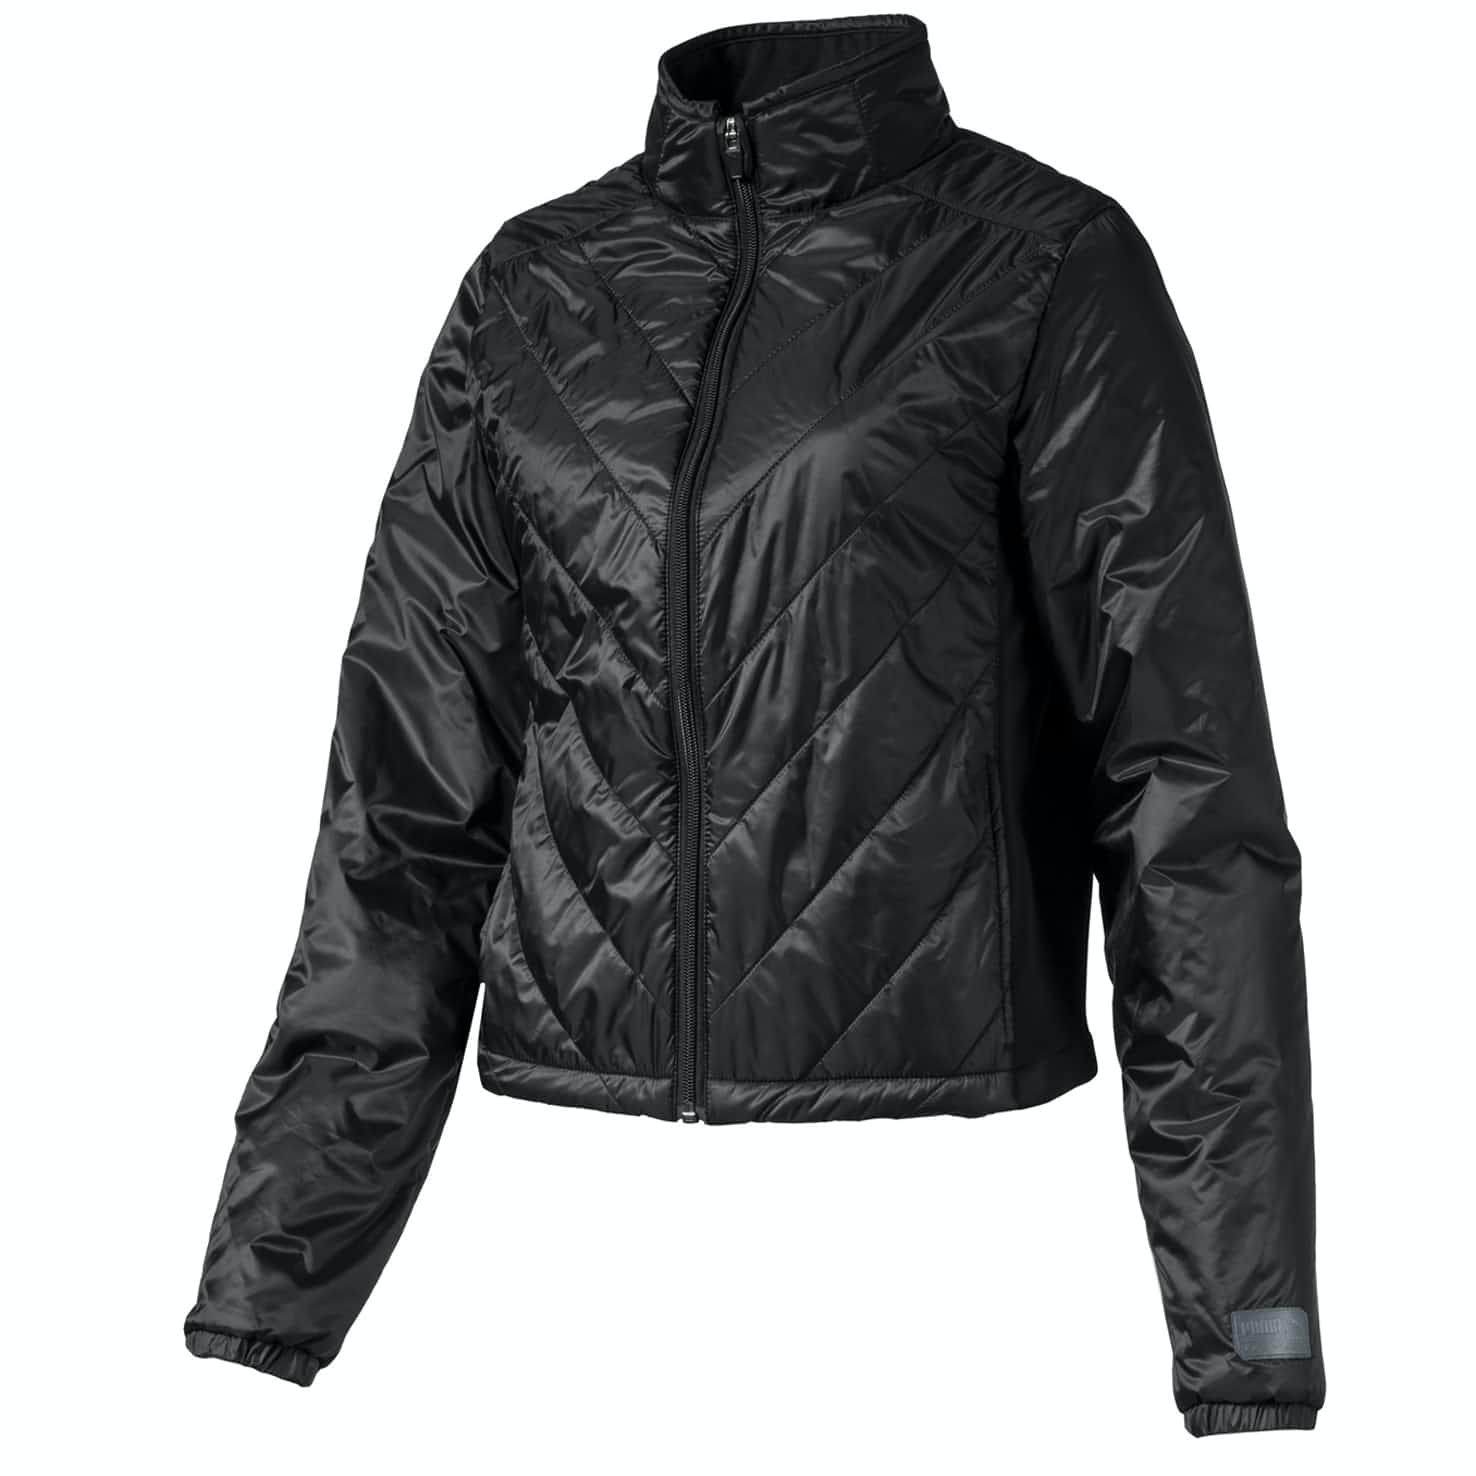 Womens Quilted Primaloft Jacket Black - AW19